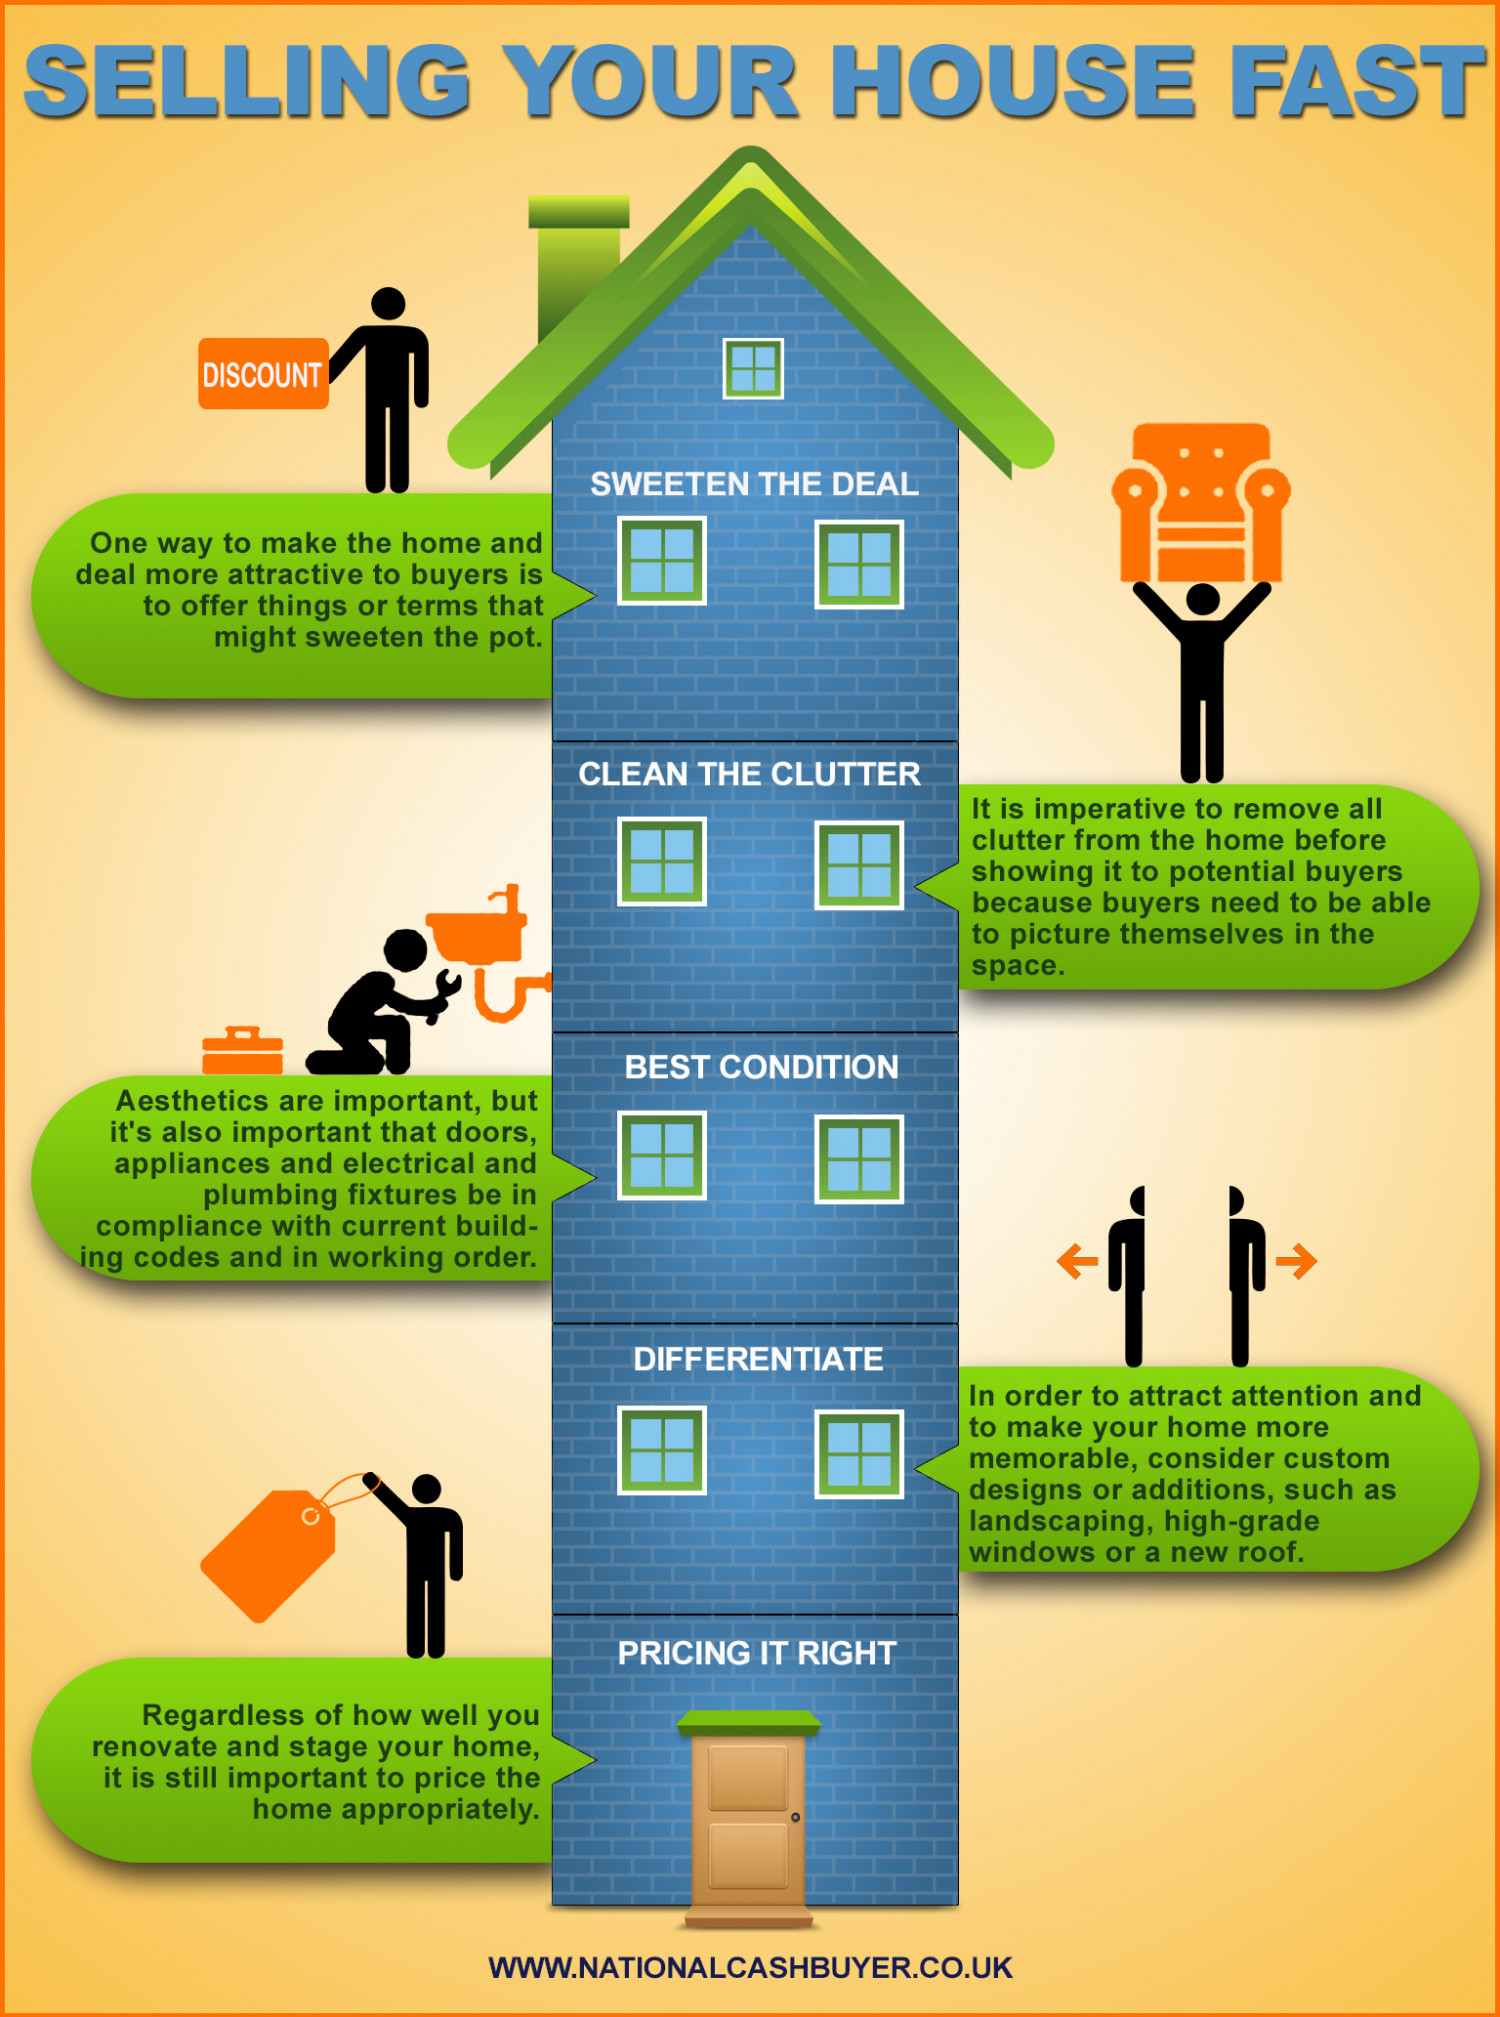 Selling Your House Fast Infographic